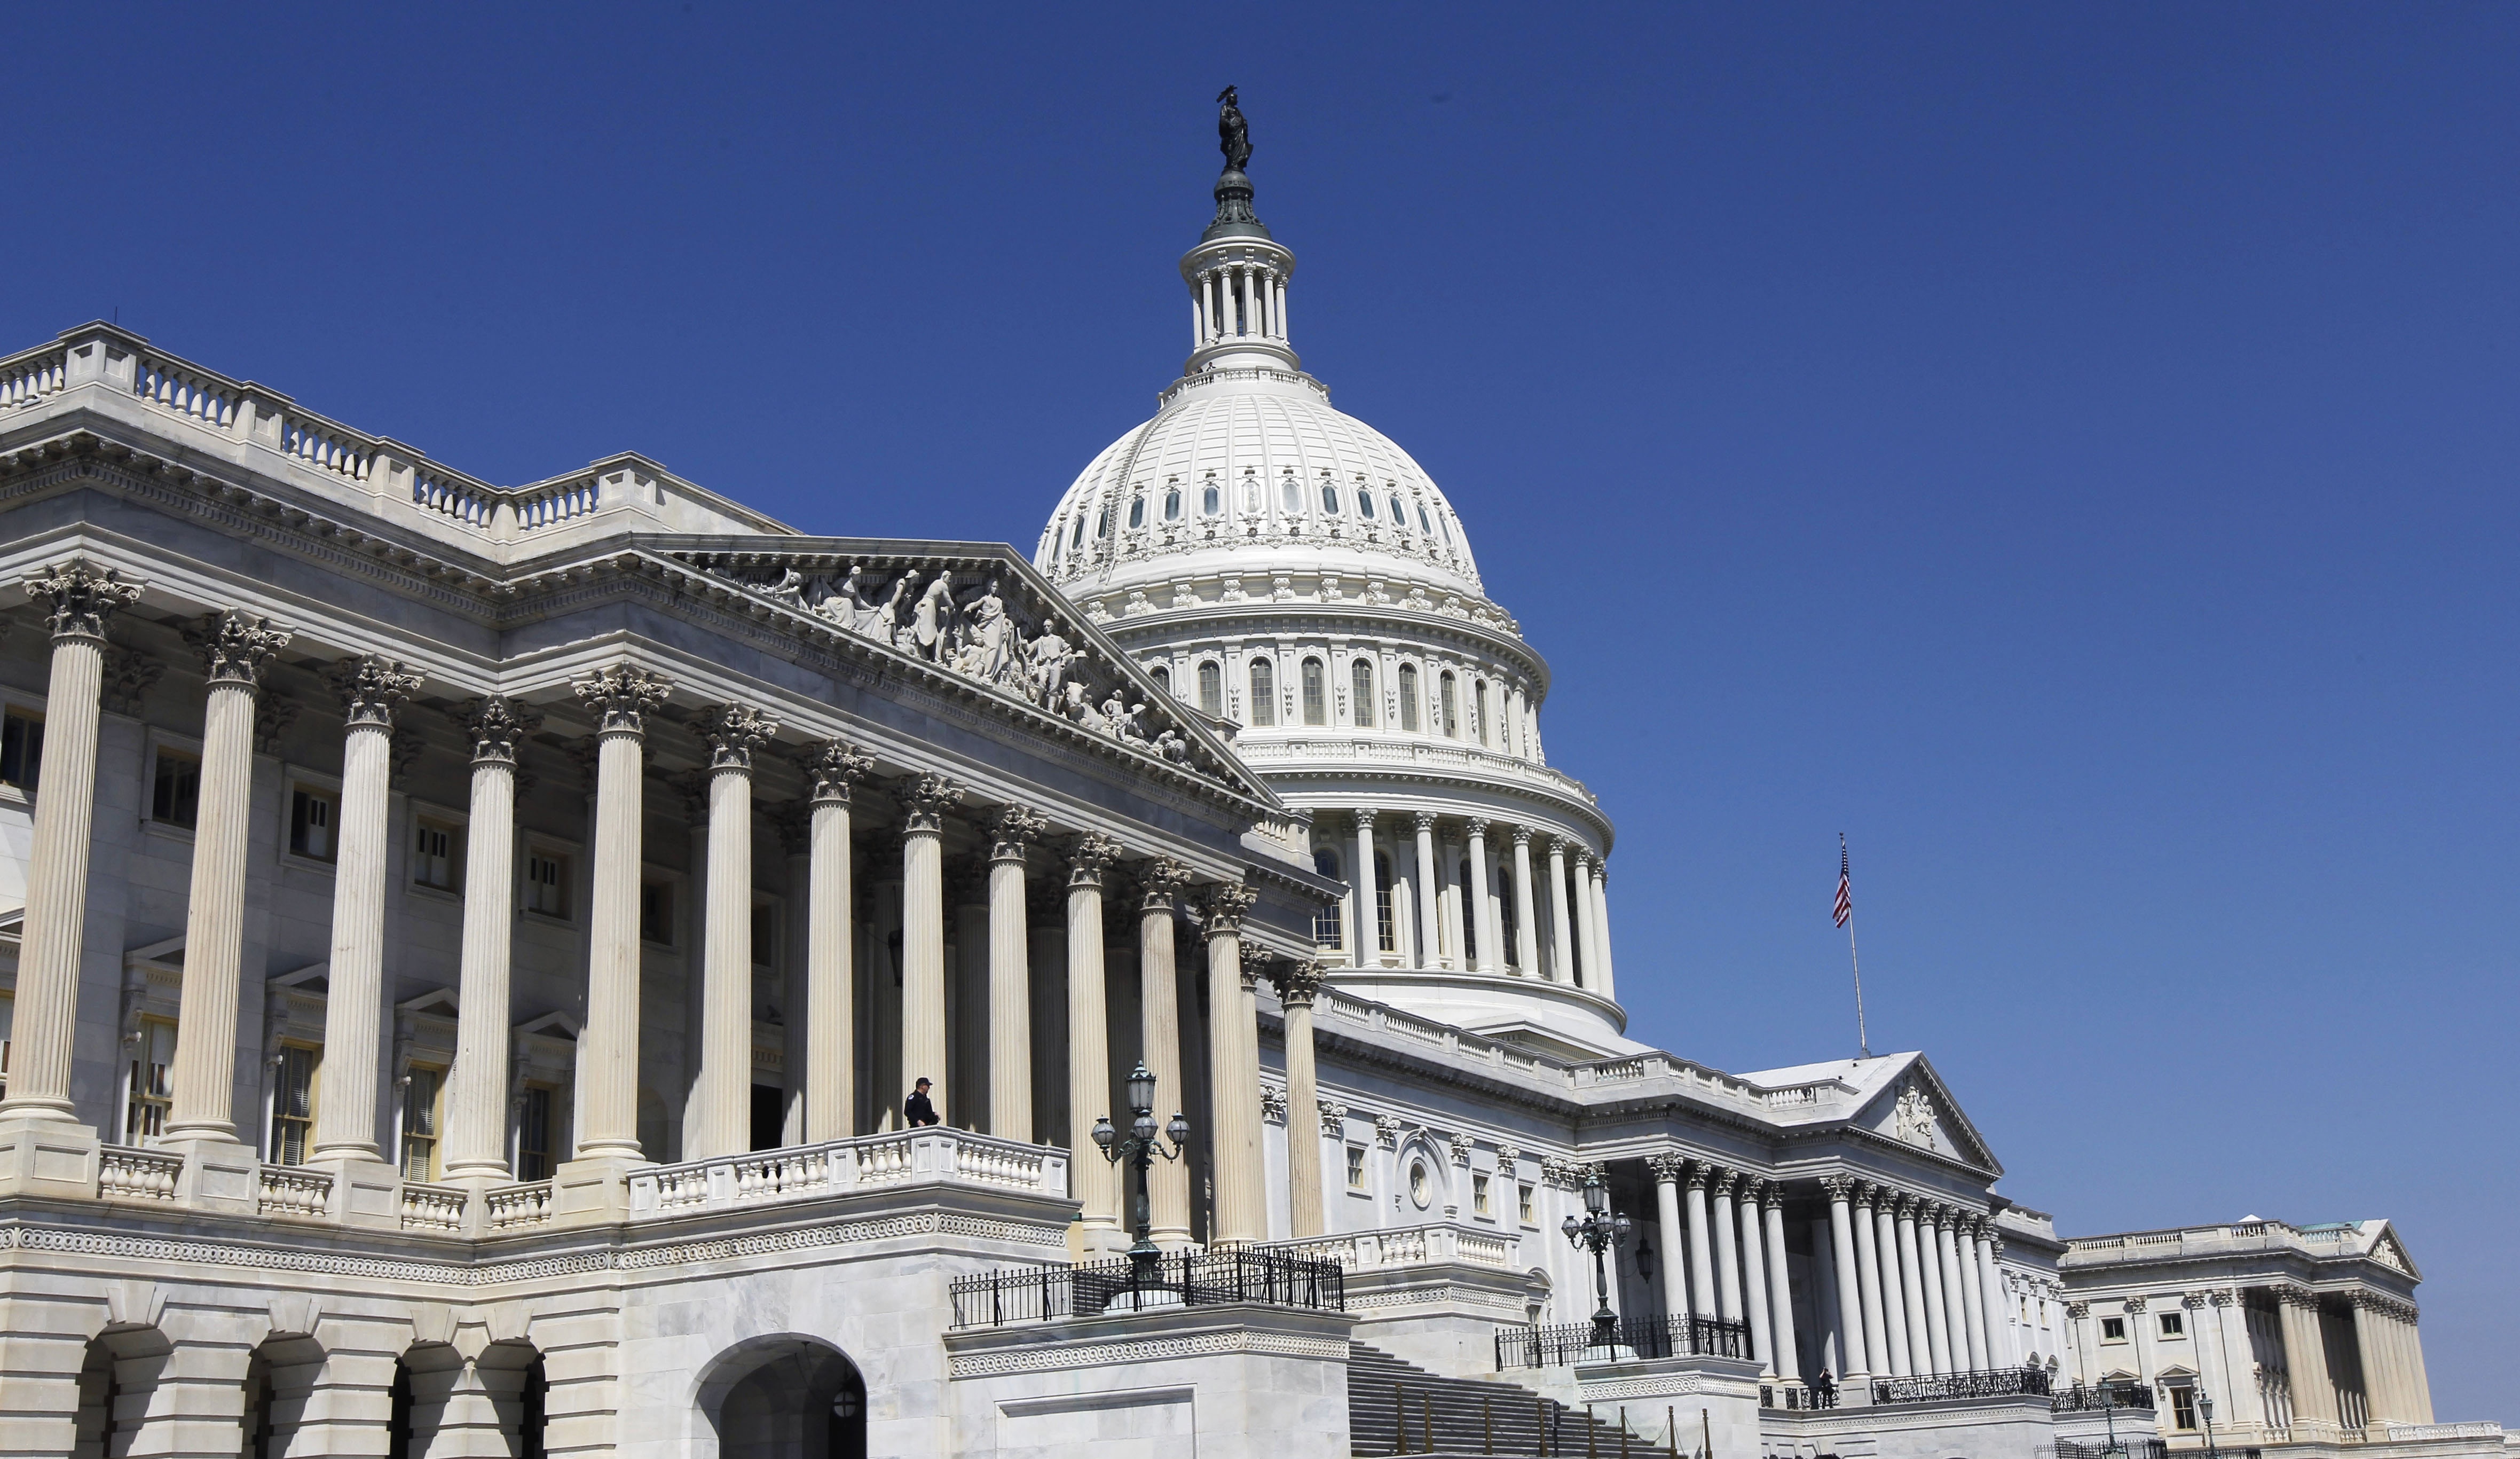 US Congress studies Adventist governance to learn how to move slower